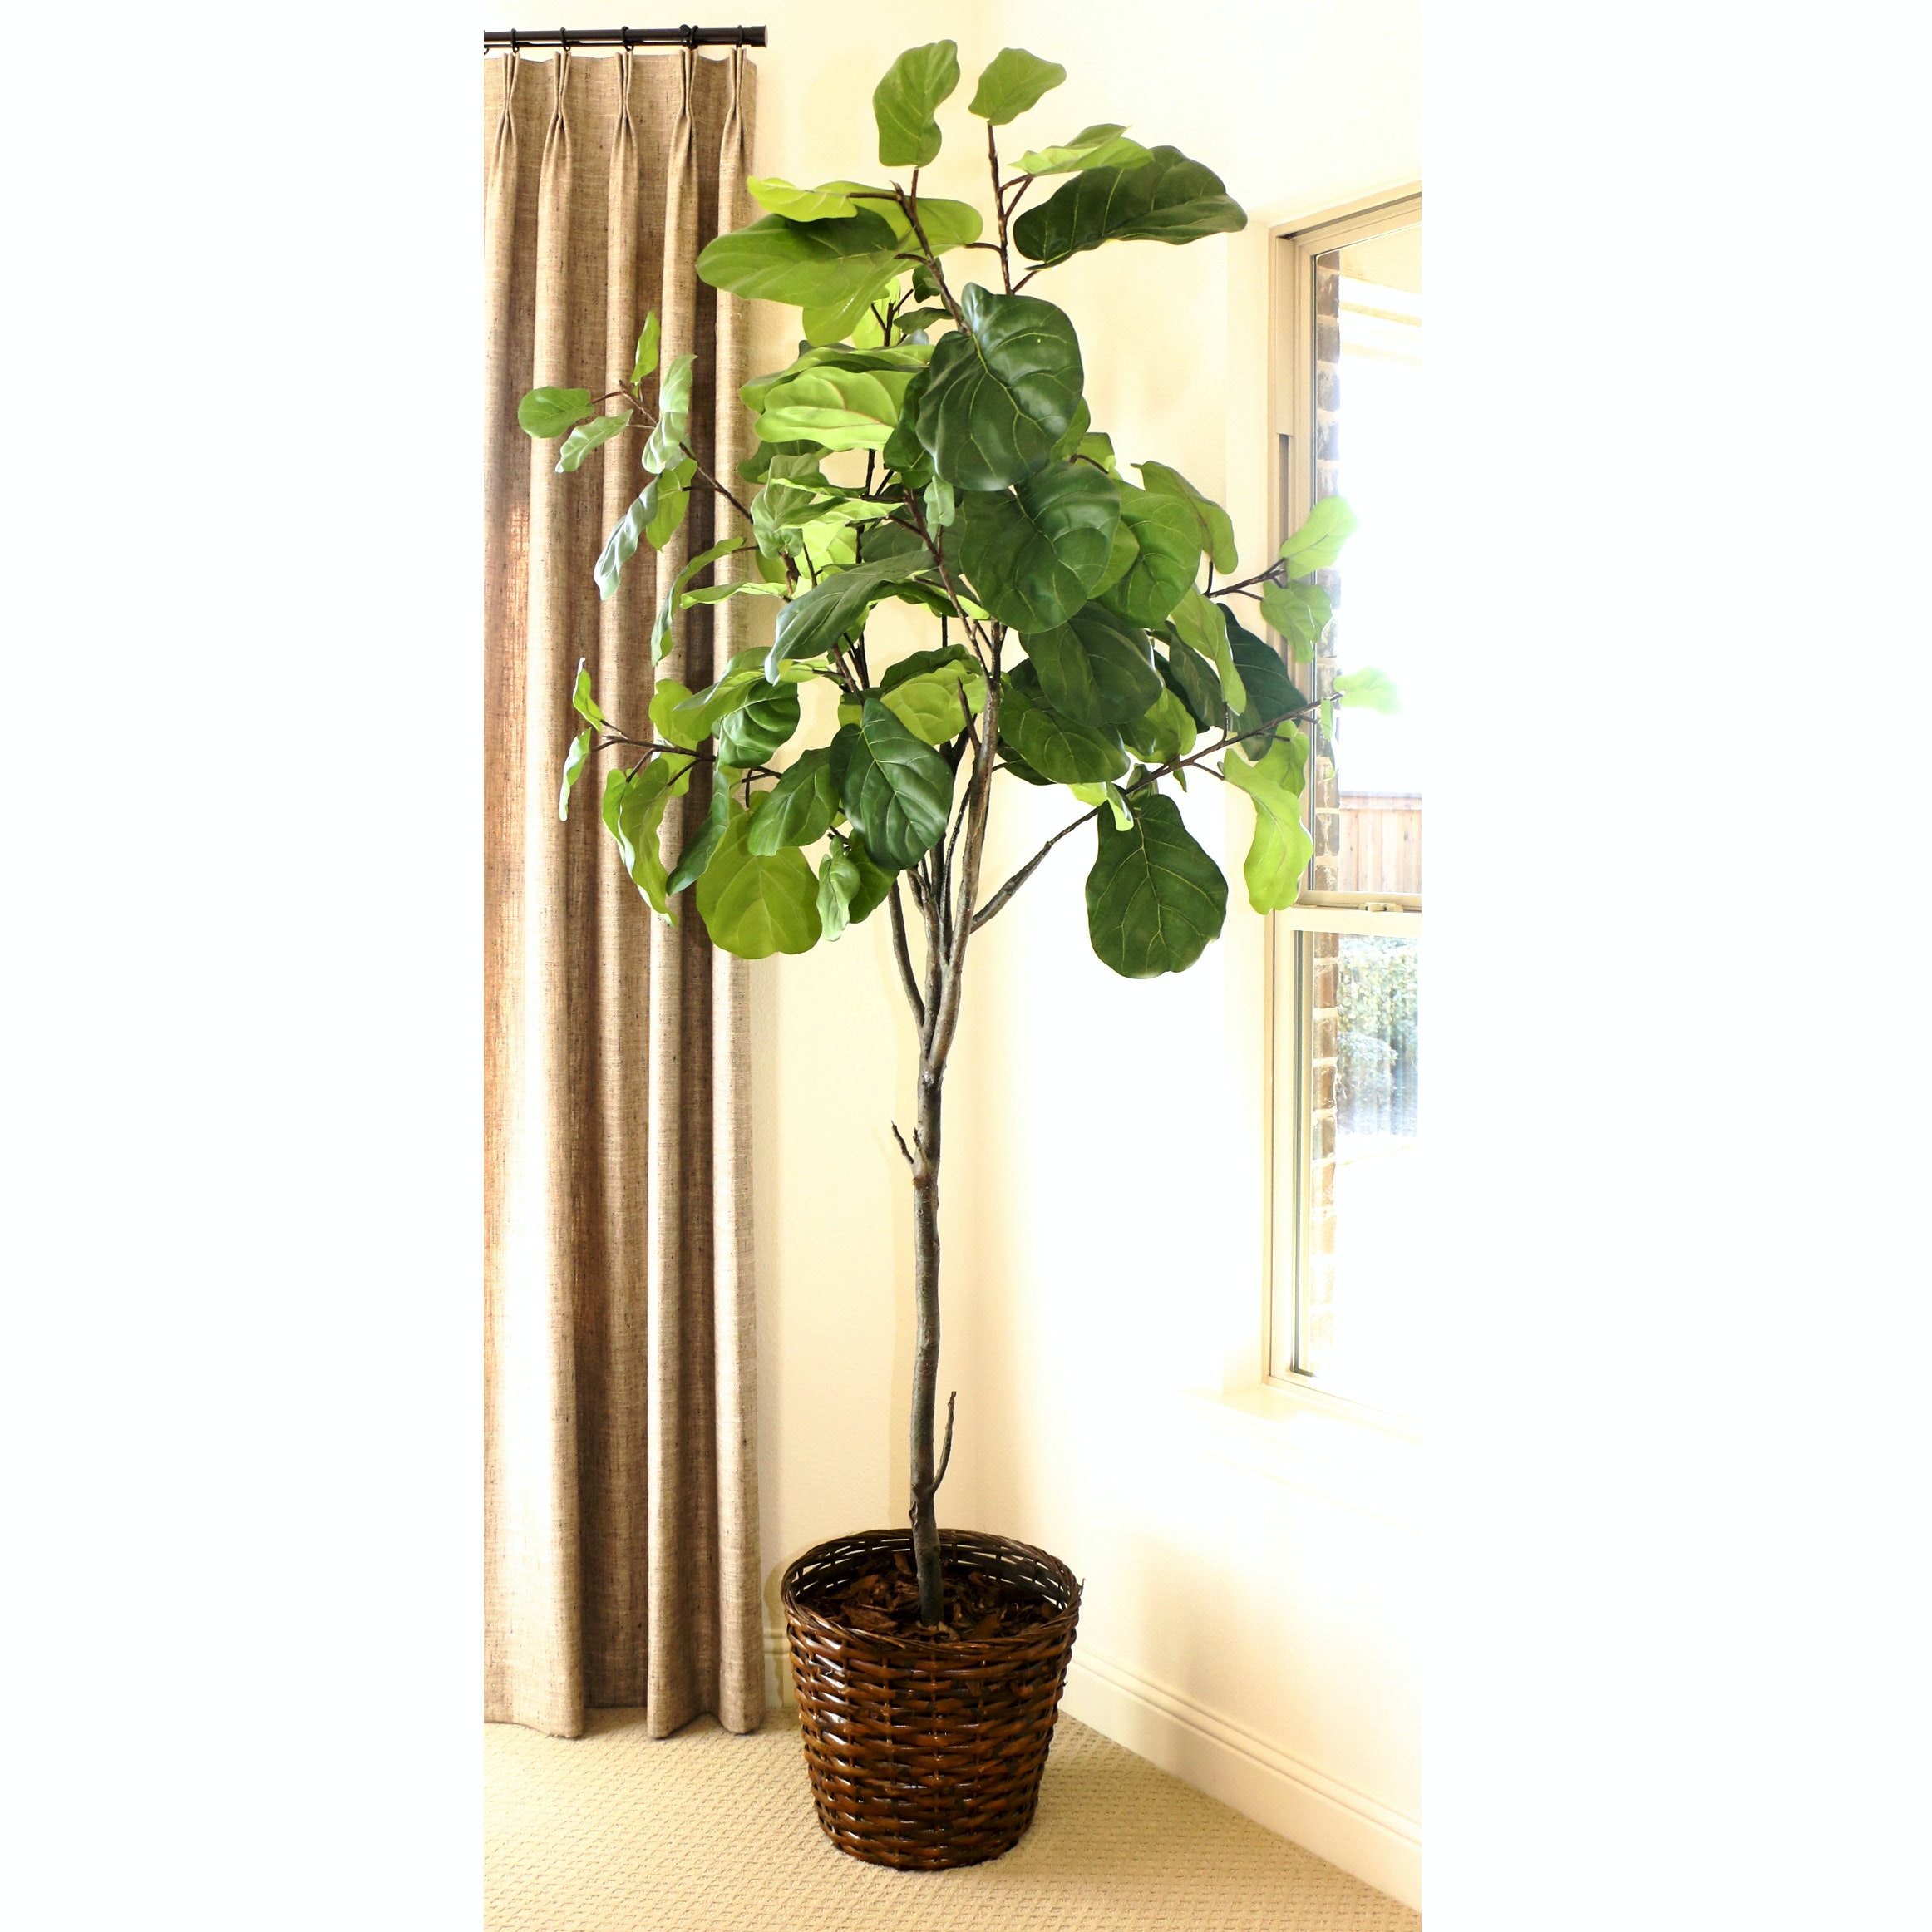 Faux Potted Fig Tree in a Woven Rattan Basket